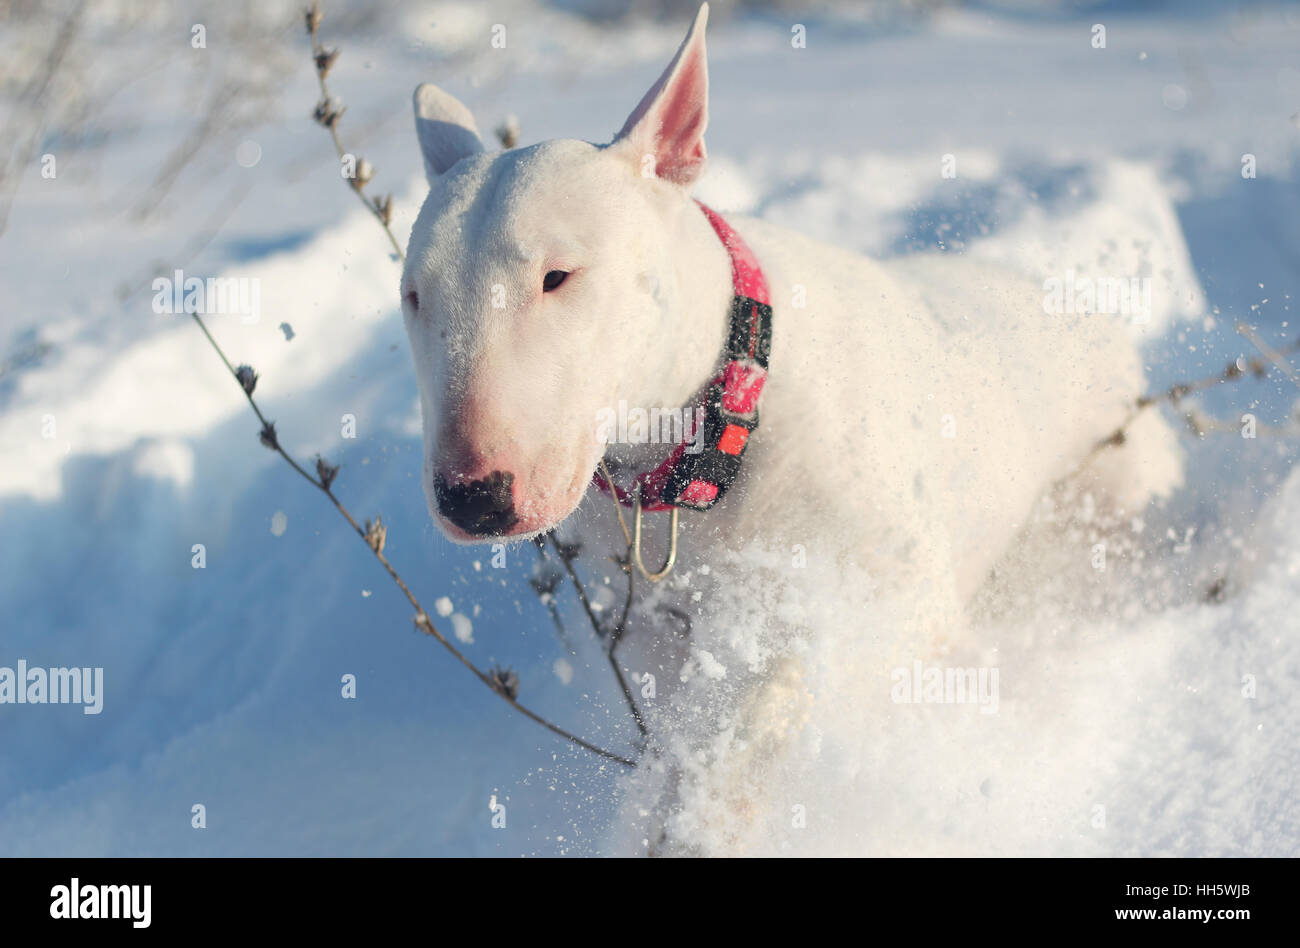 White English Bull Terrier on nature in the winter - Stock Image